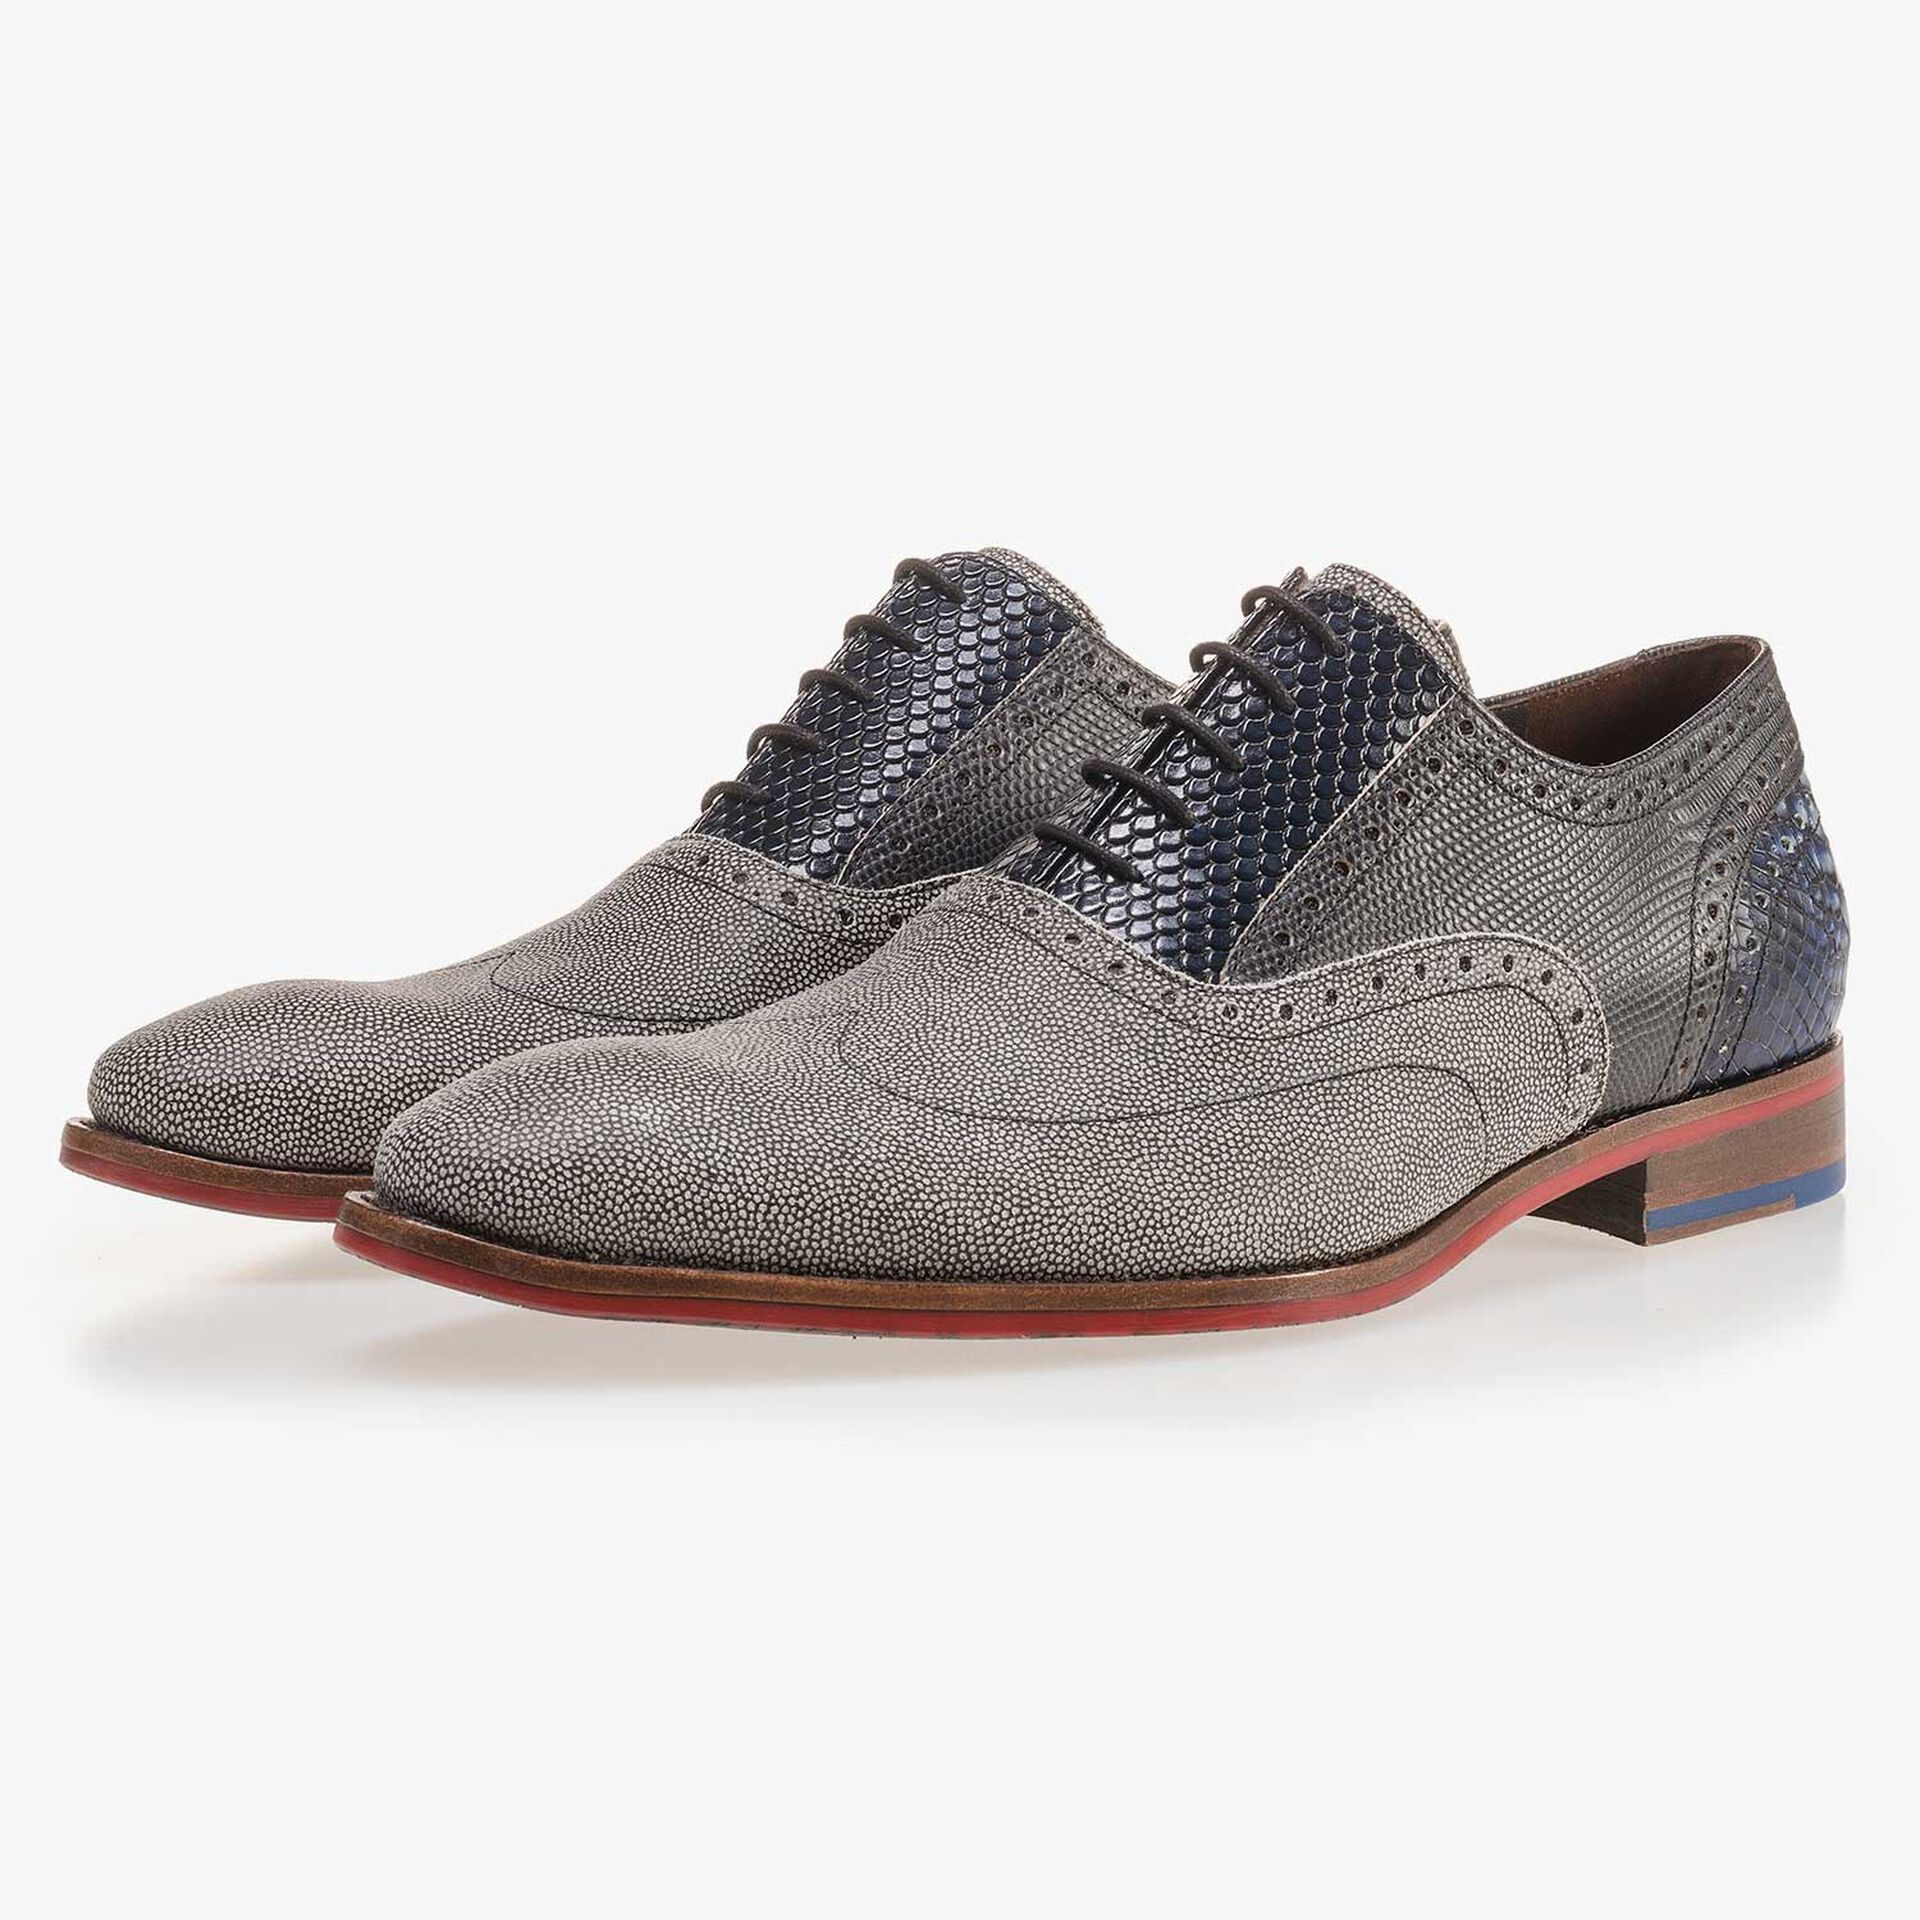 Grey, patterned suede leather lace shoe